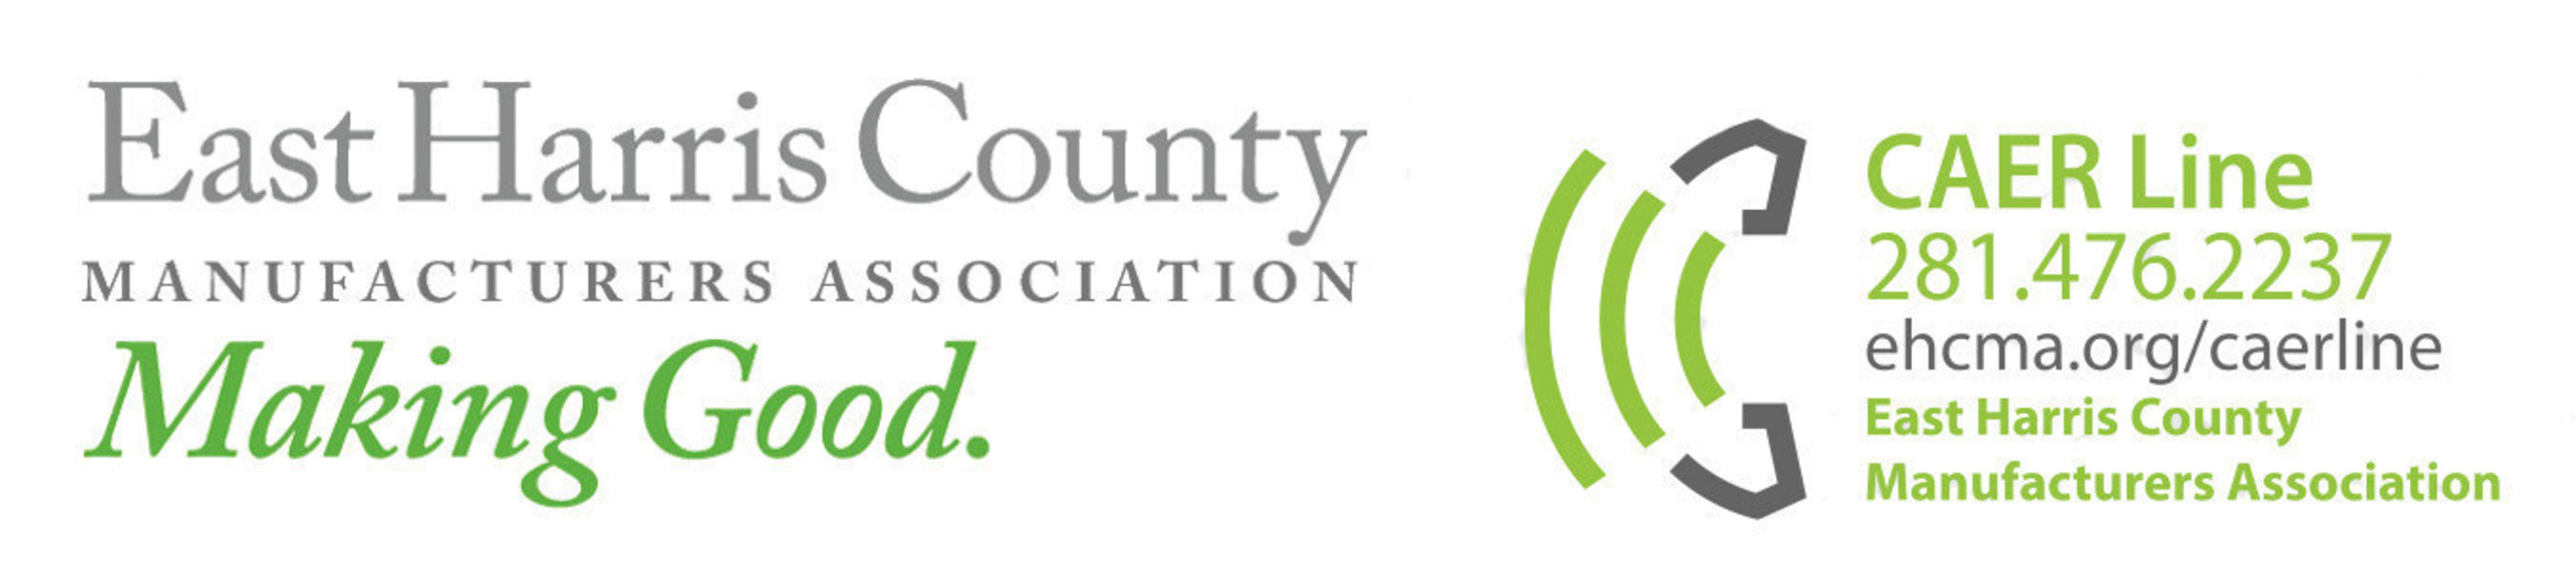 East Harris County Manufacturers Association